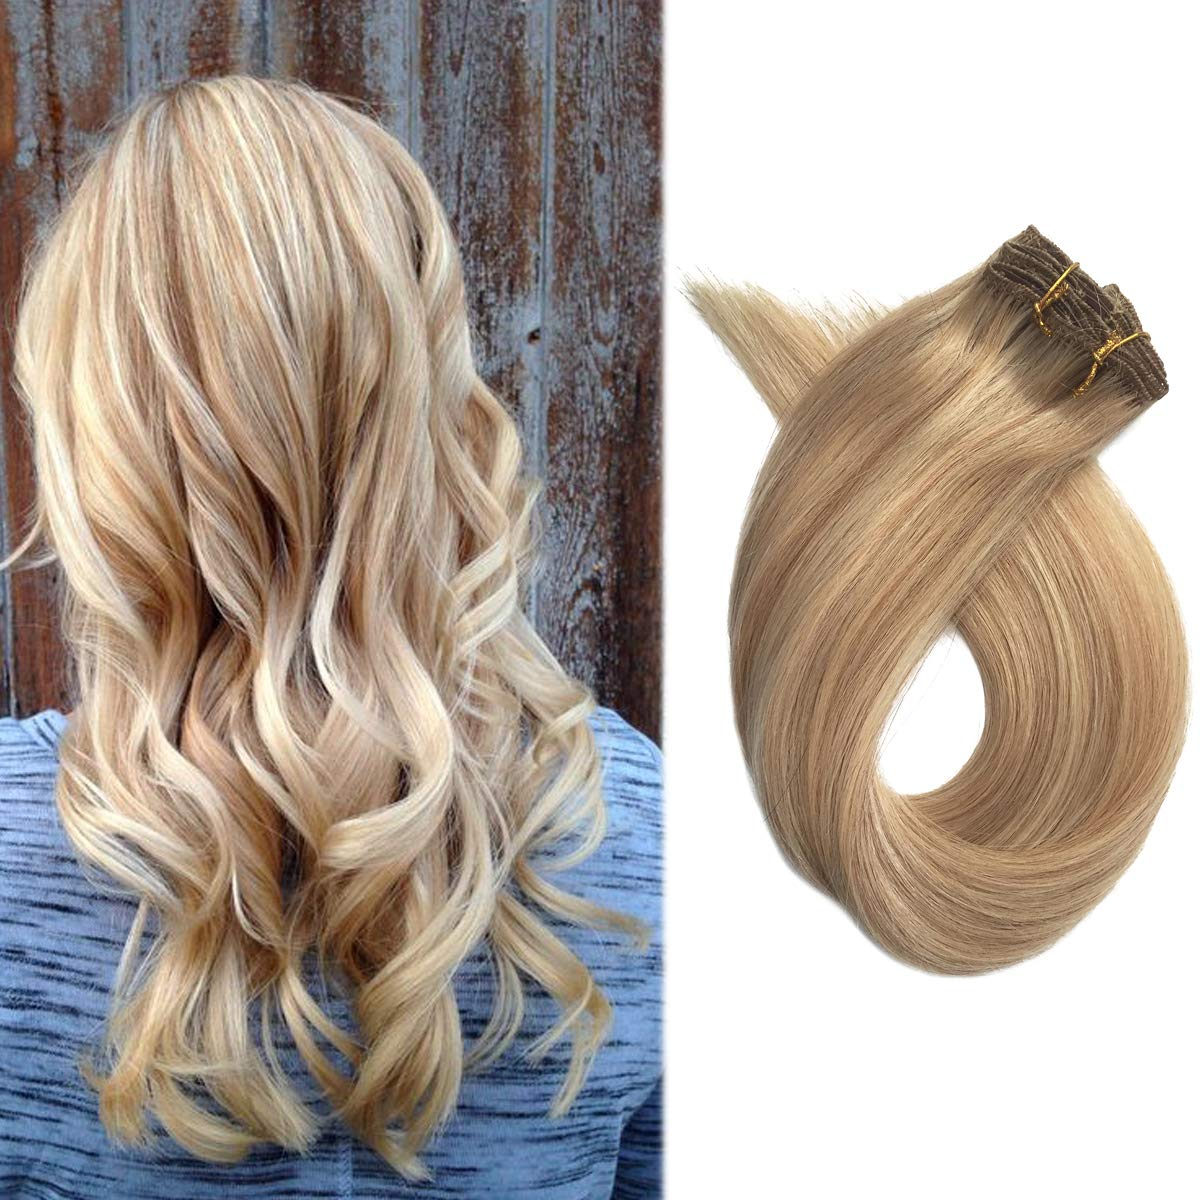 Human Hair Extension Clip in Blonde Highlighted 70rams 15'' Short Silky Straight Remy Hair Clip ins Strawberry Blonde to Bleach Blonde Mixed 7 Pieces, 27/613 by Licoville